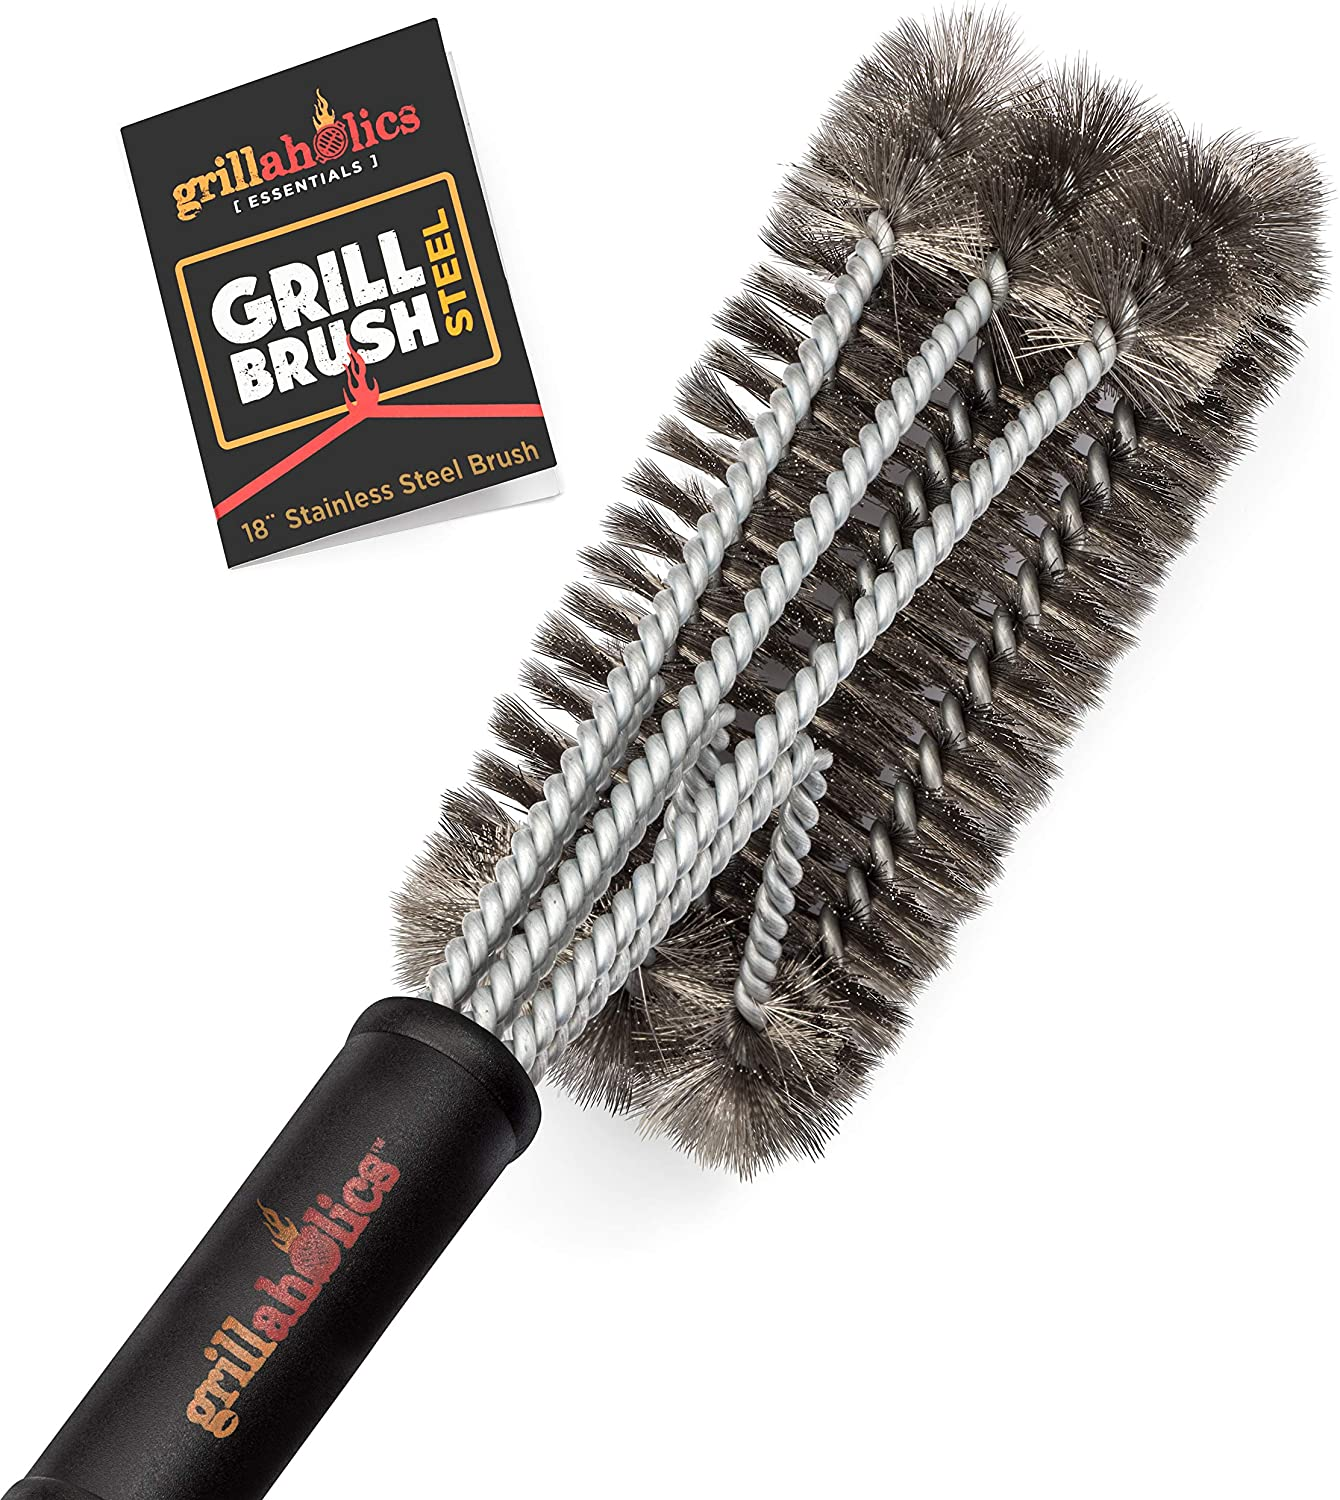 Grillaholics Essentials Grill Brush Steel